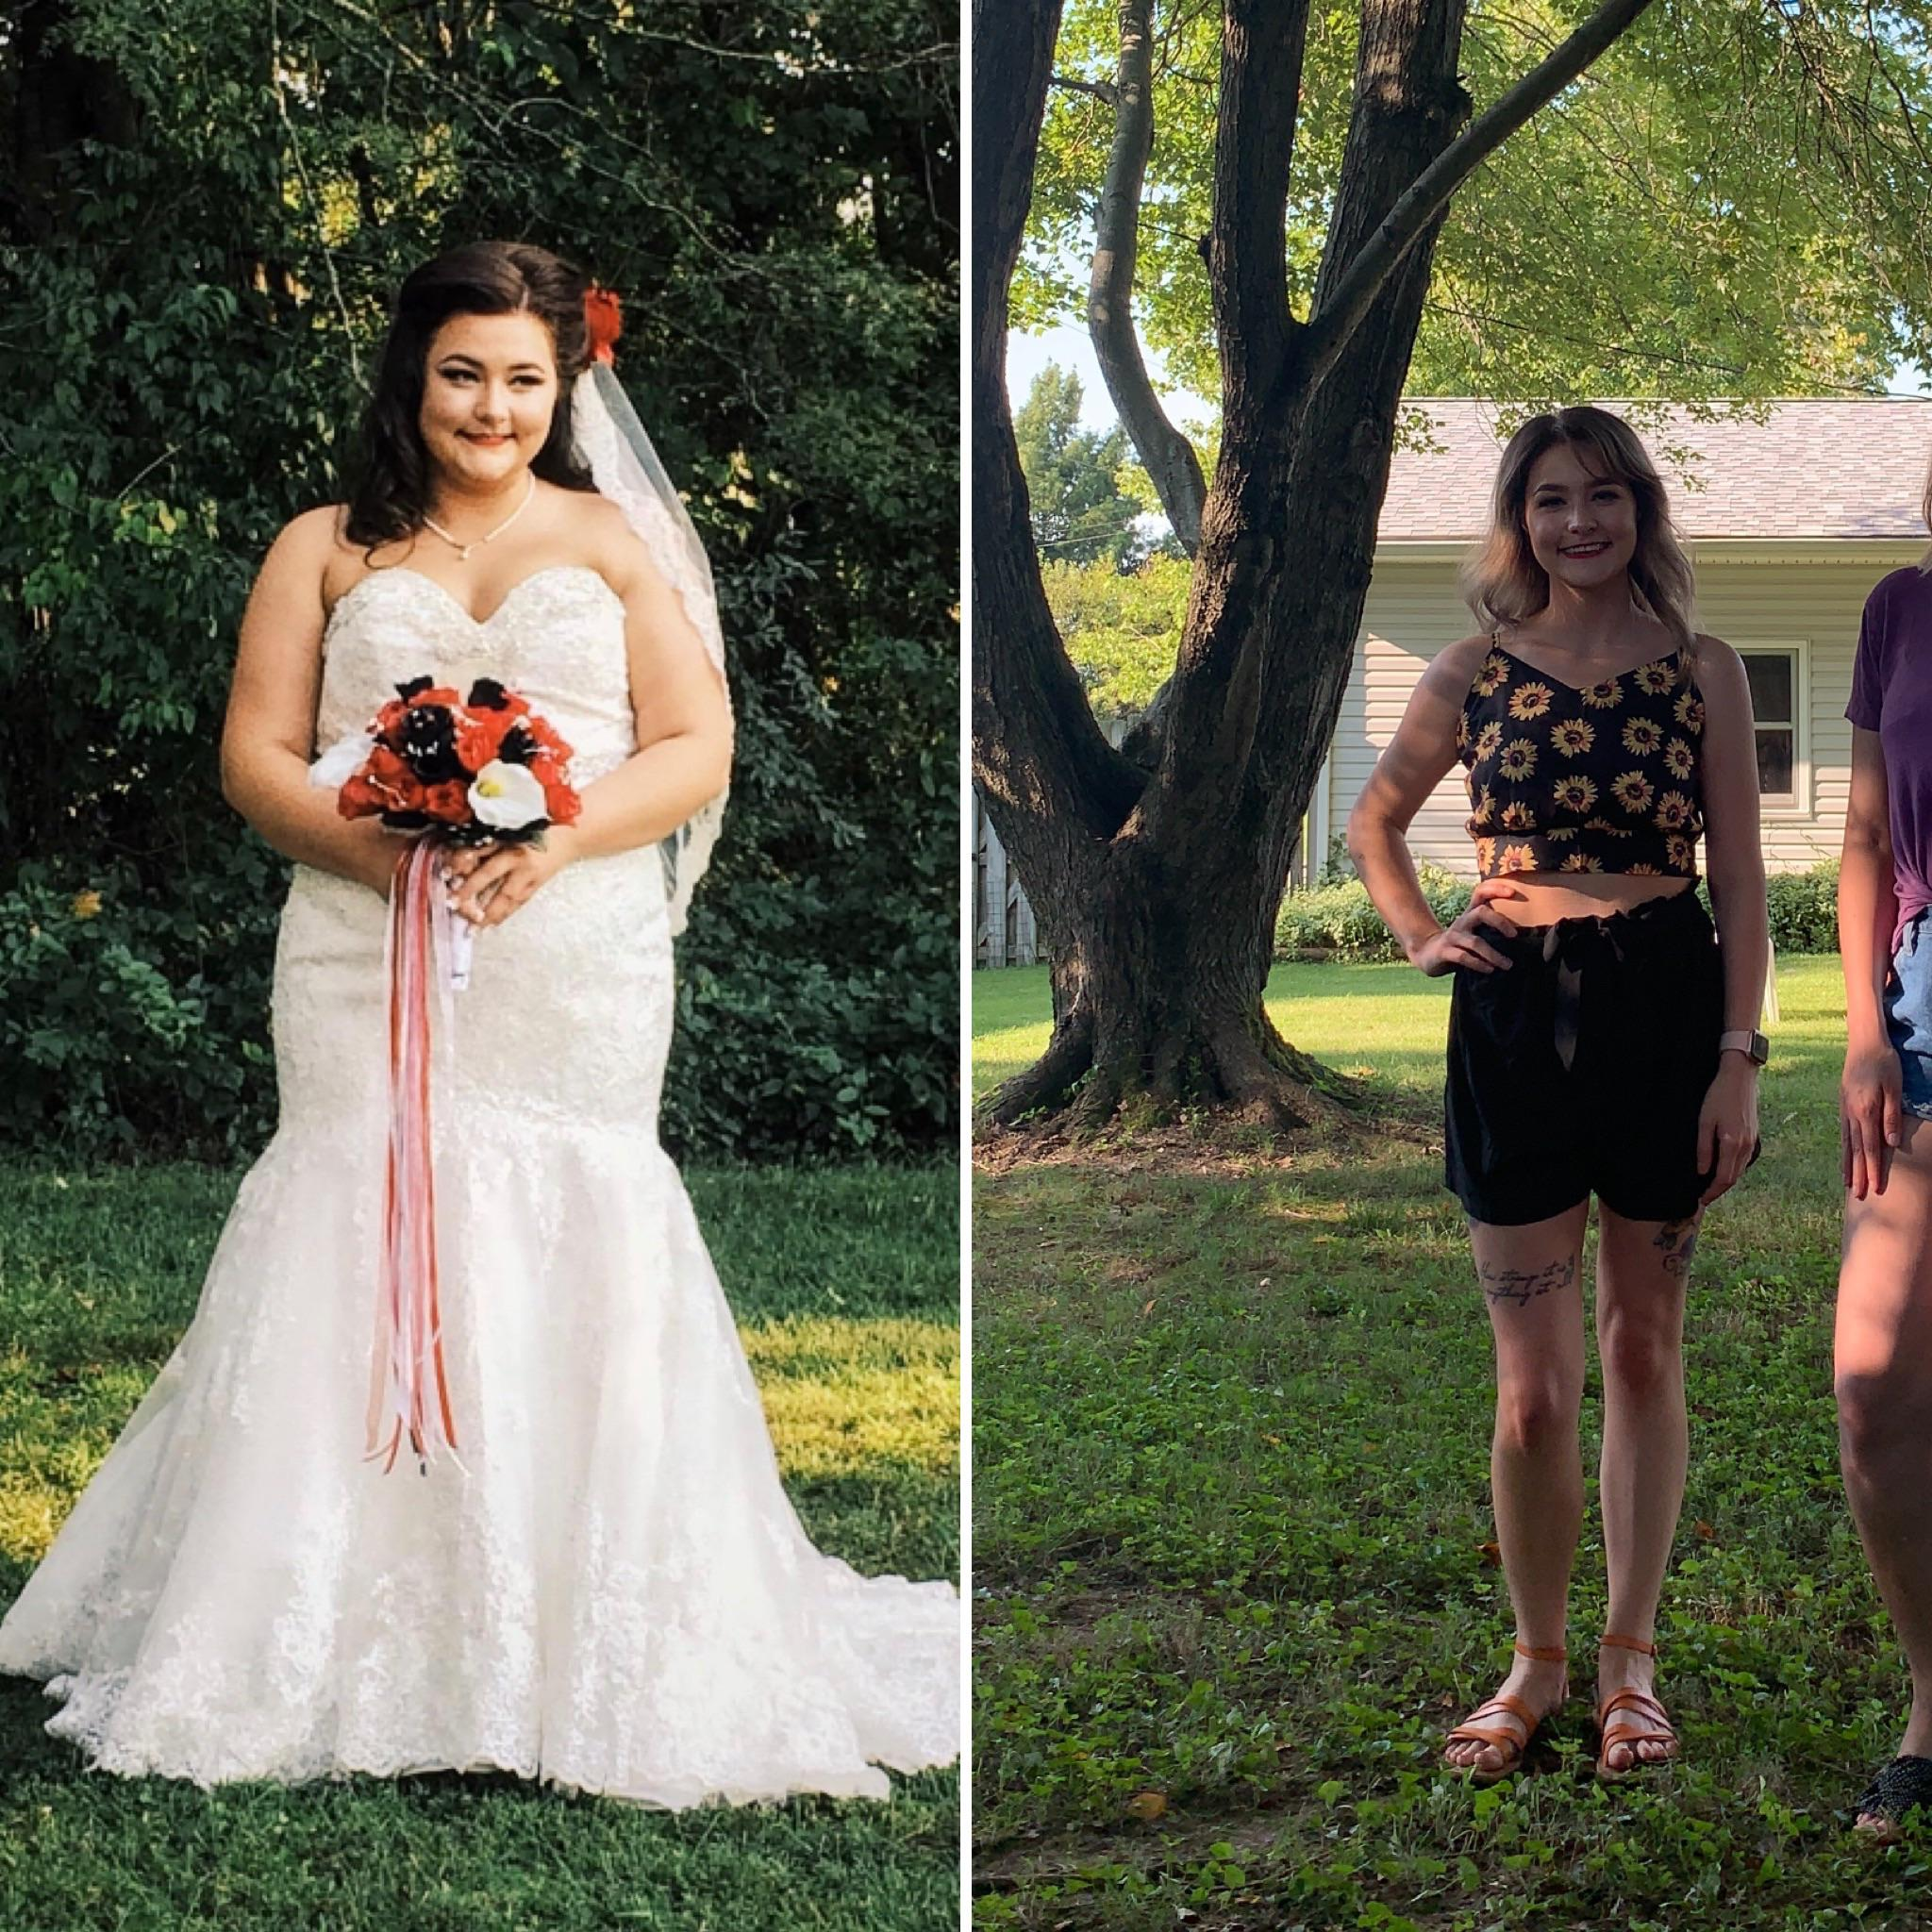 5 feet 5 Female 85 lbs Weight Loss Before and After 210 lbs to 125 lbs